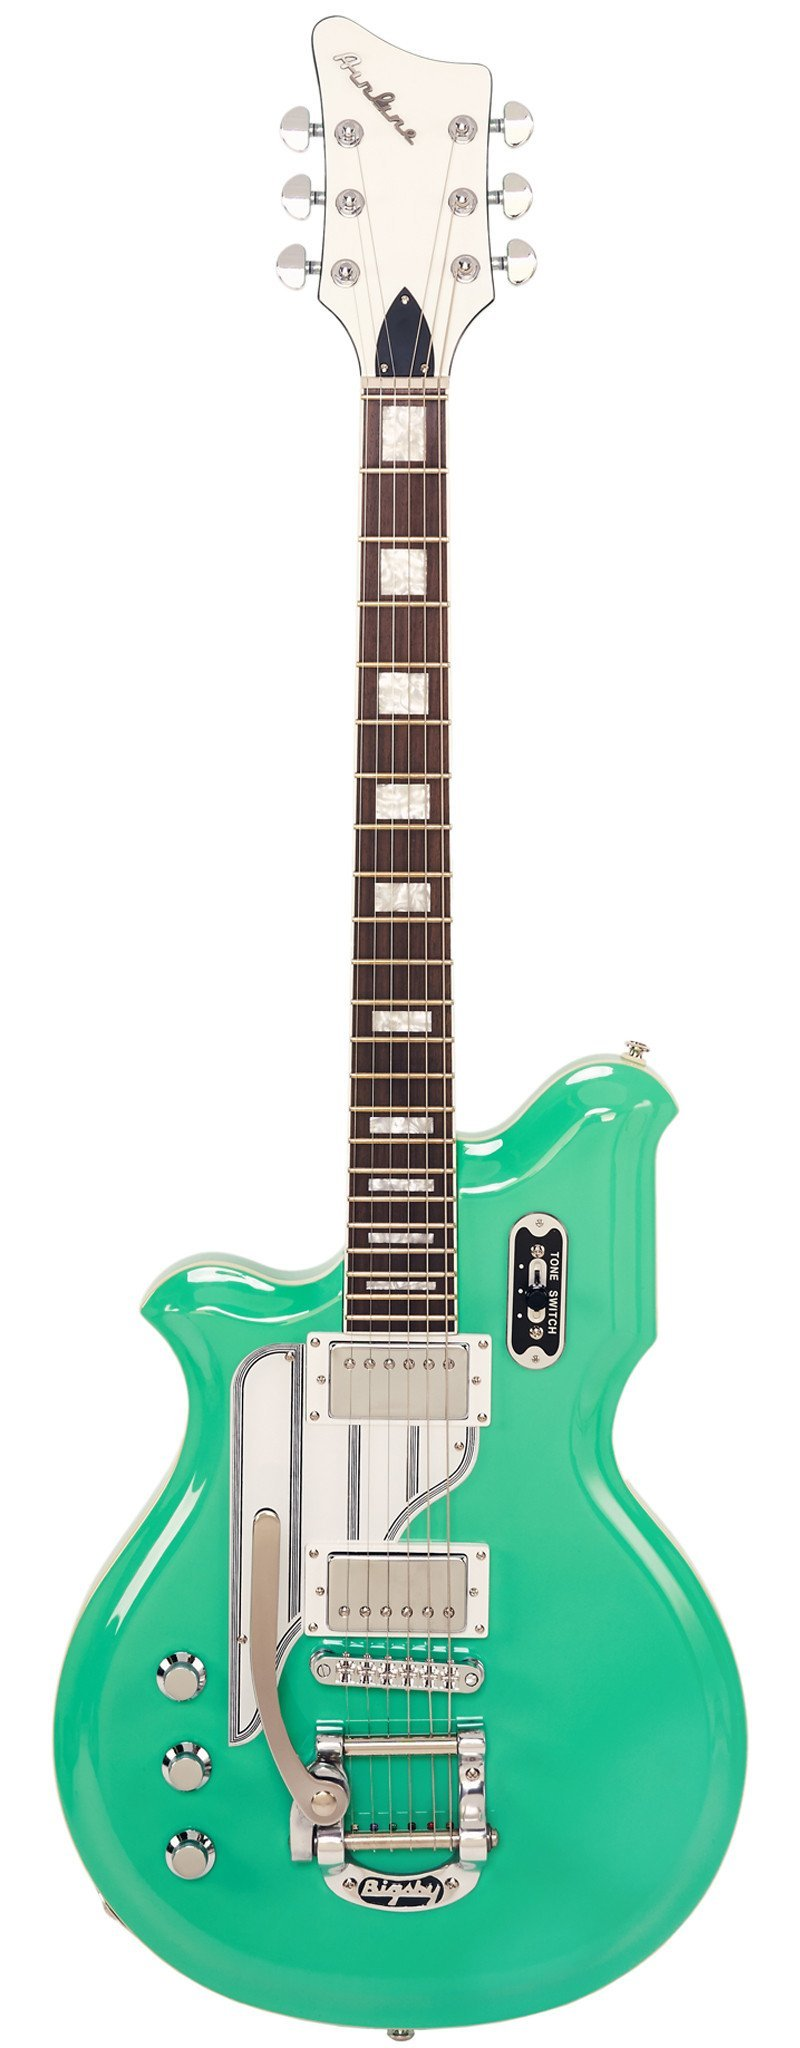 Eastwood Guitars Airline Map DLX Seafoam Green LH Full Front